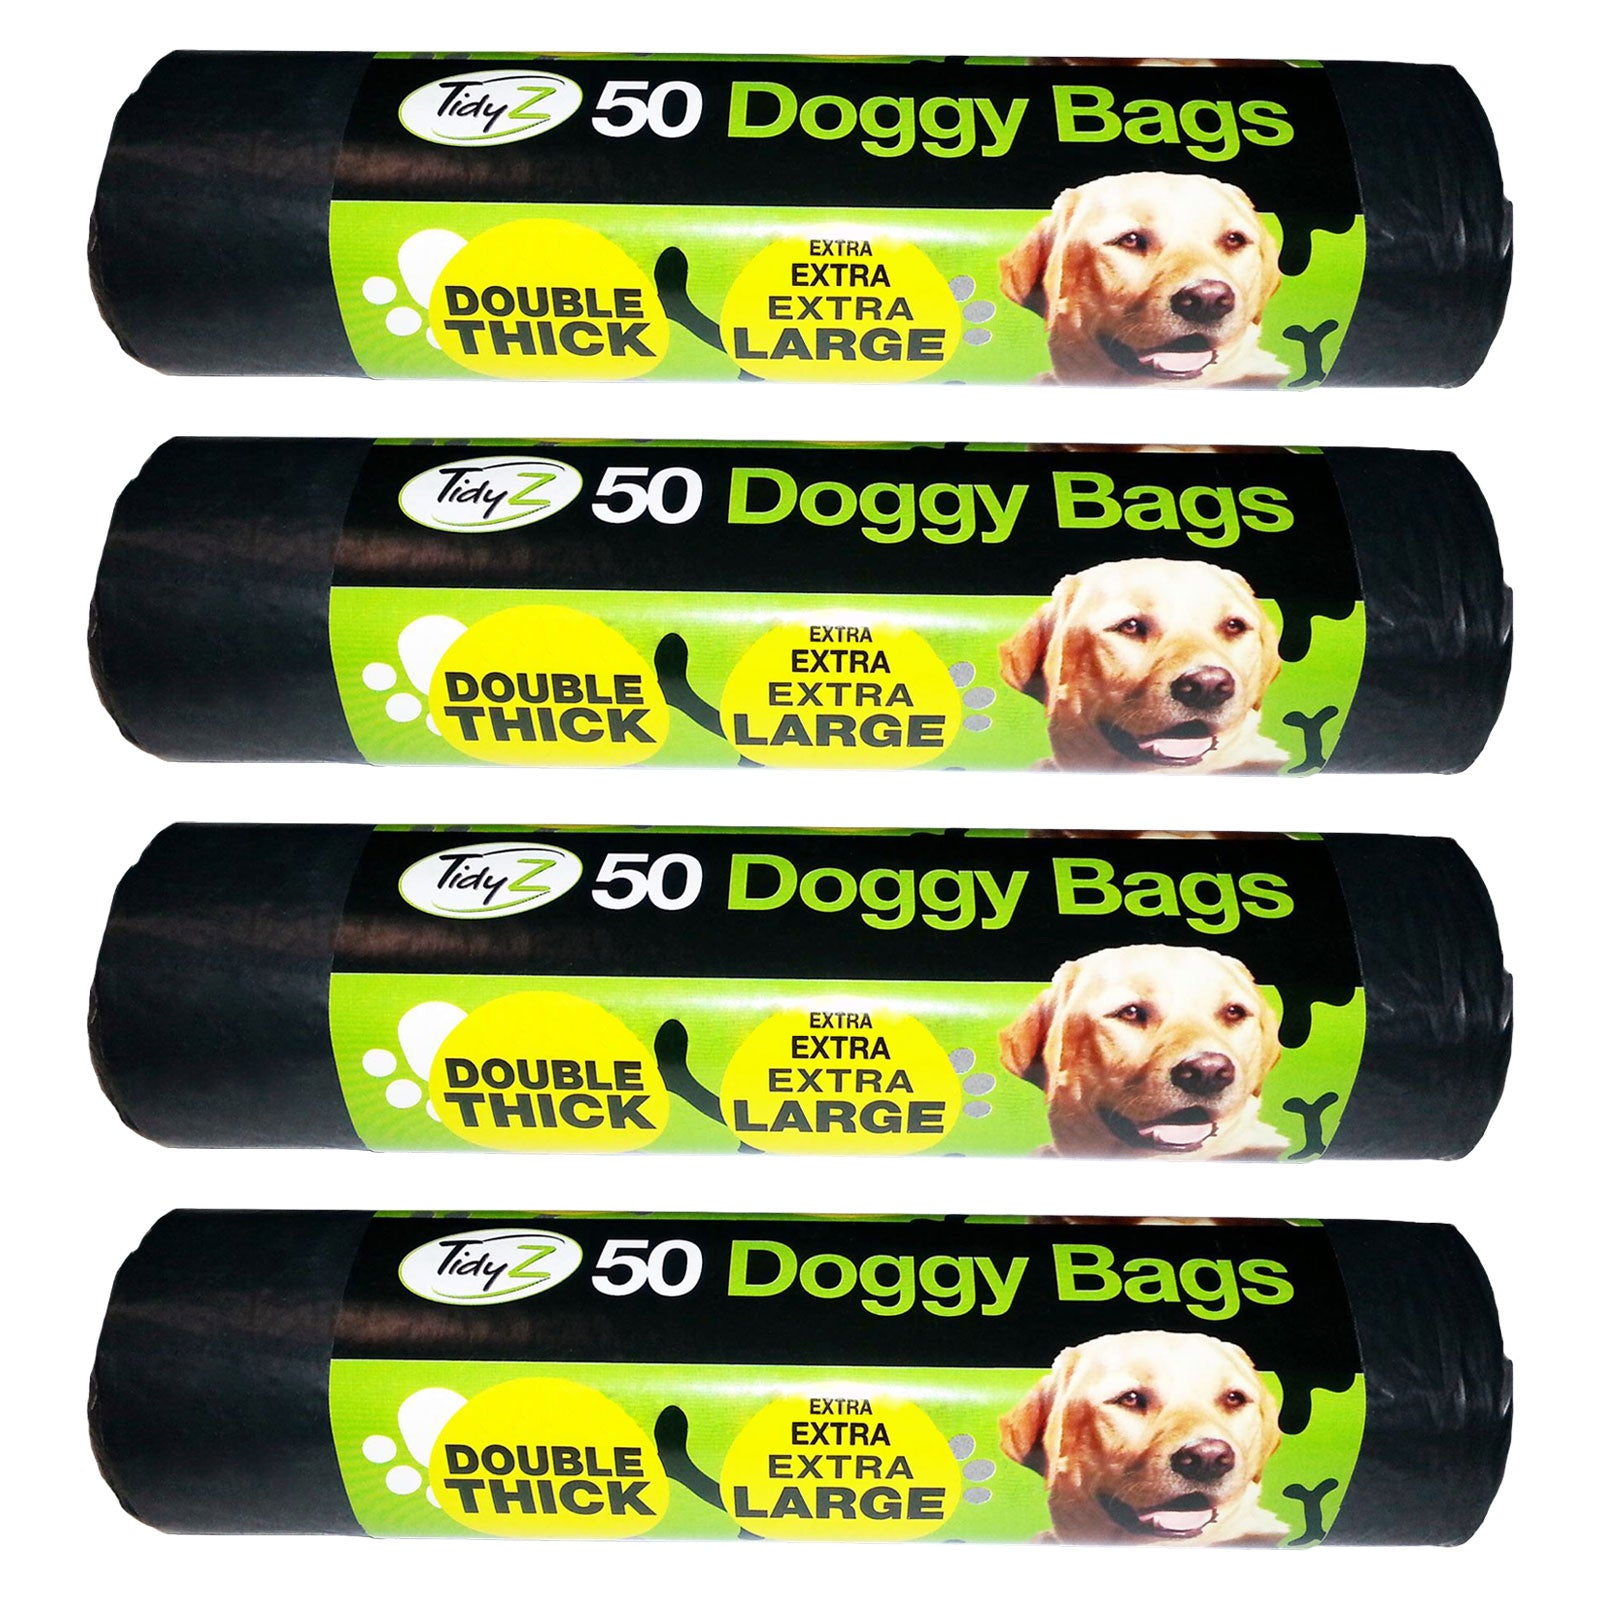 TidyZ 50 Doggy Bags Extra Large Double Thick Strong Dog Cat Pet Poo Waste Bags